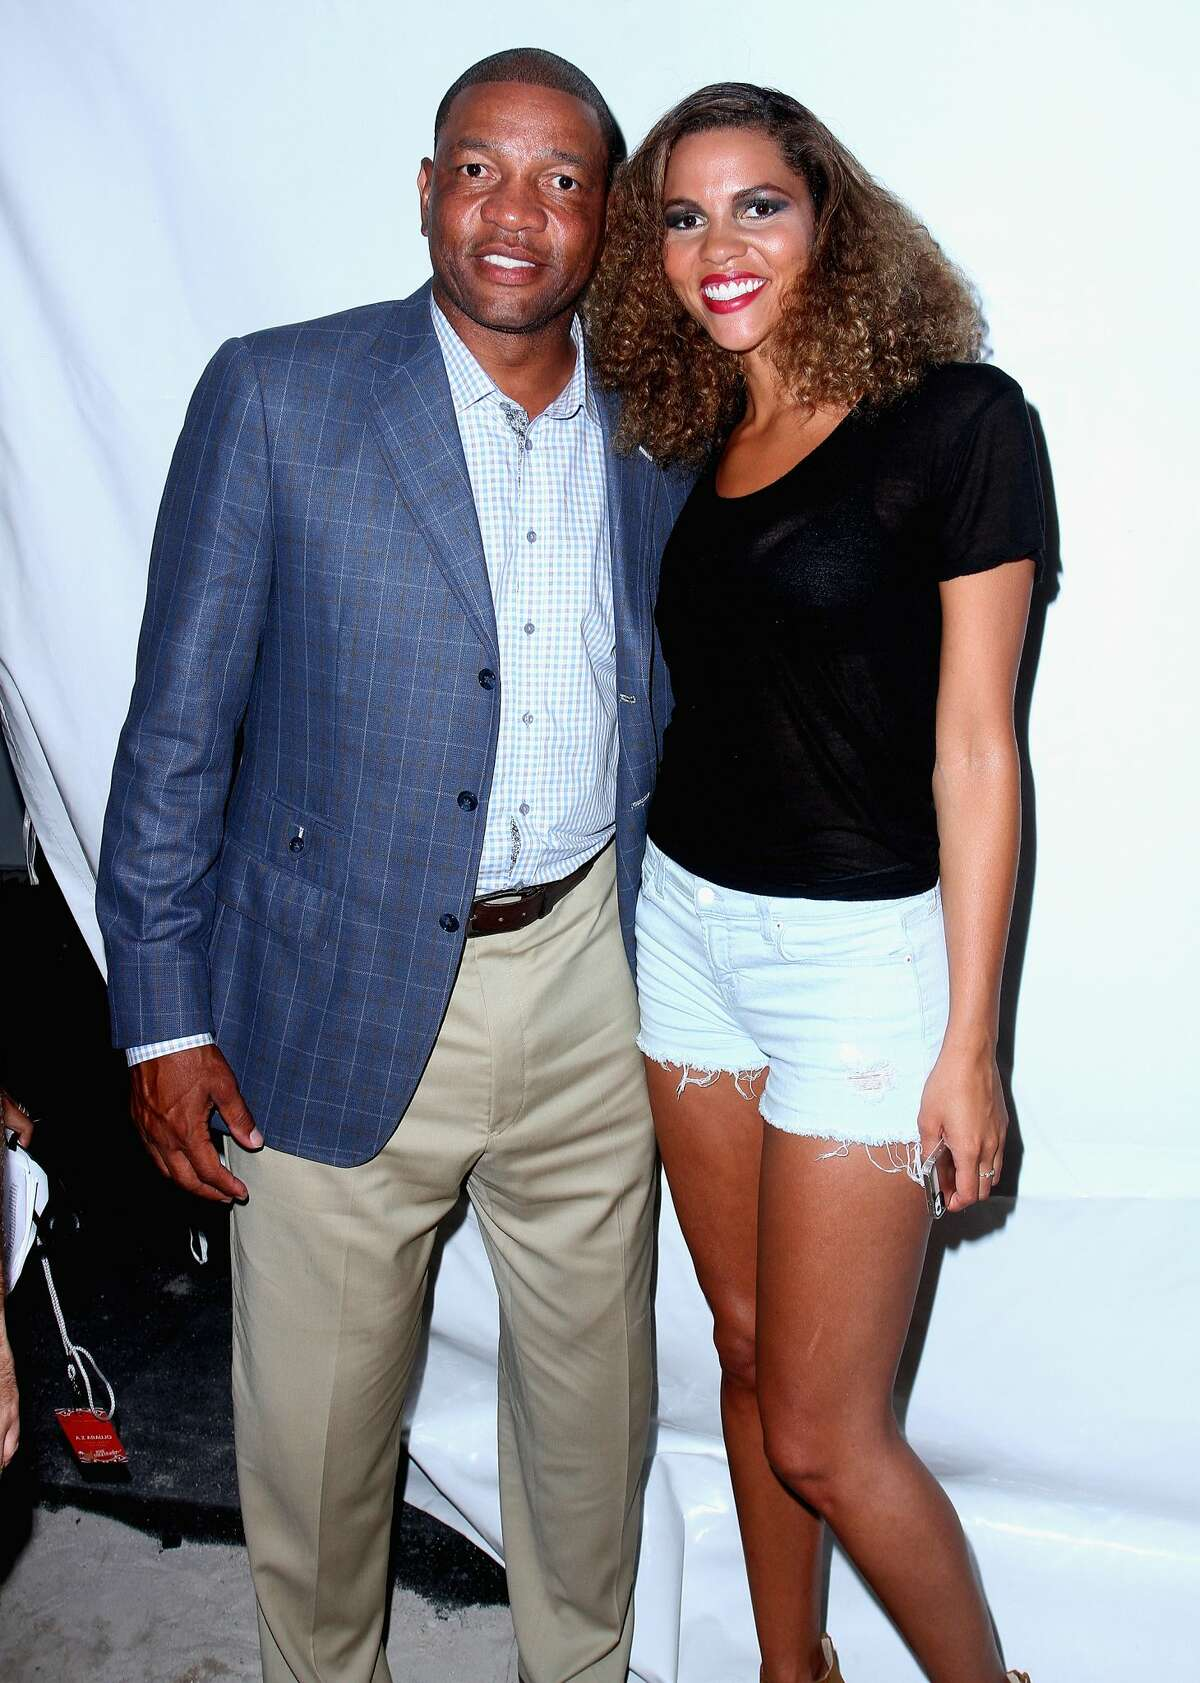 Doc Rivers and daughter Callie Rivers attend the A.Z Araujo show during Mercedes-Benz Fashion Week Swim 2015 The Raleigh on July 21, 2014 in Miami Beach, Florida.